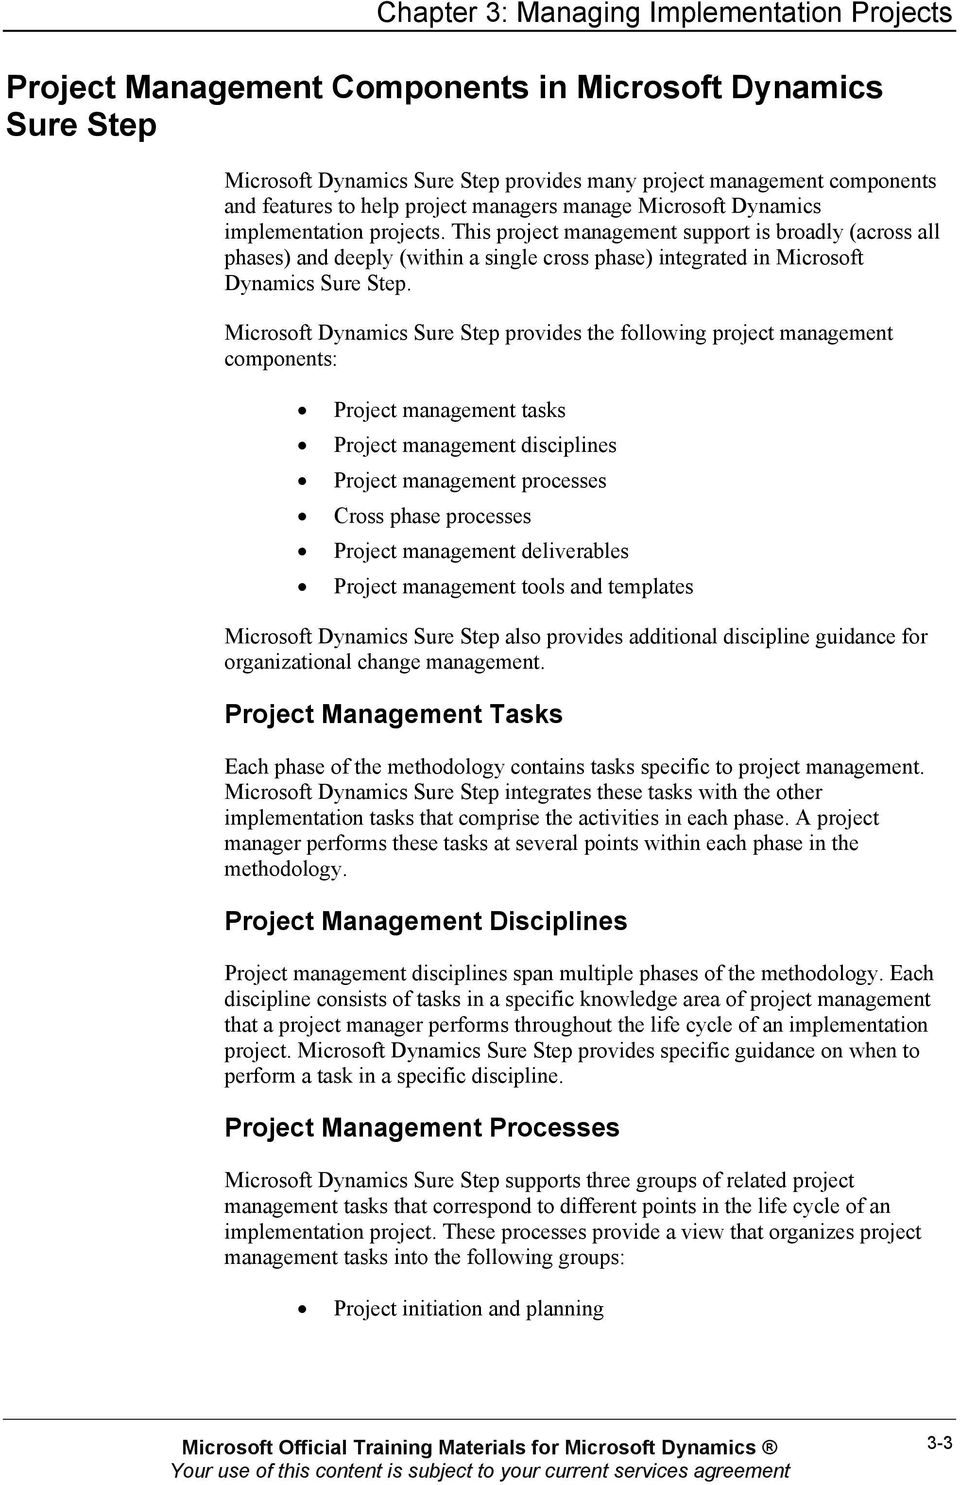 This project management support is broadly (across all phases) and deeply (within a single cross phase) integrated in Microsoft Dynamics Sure Step.